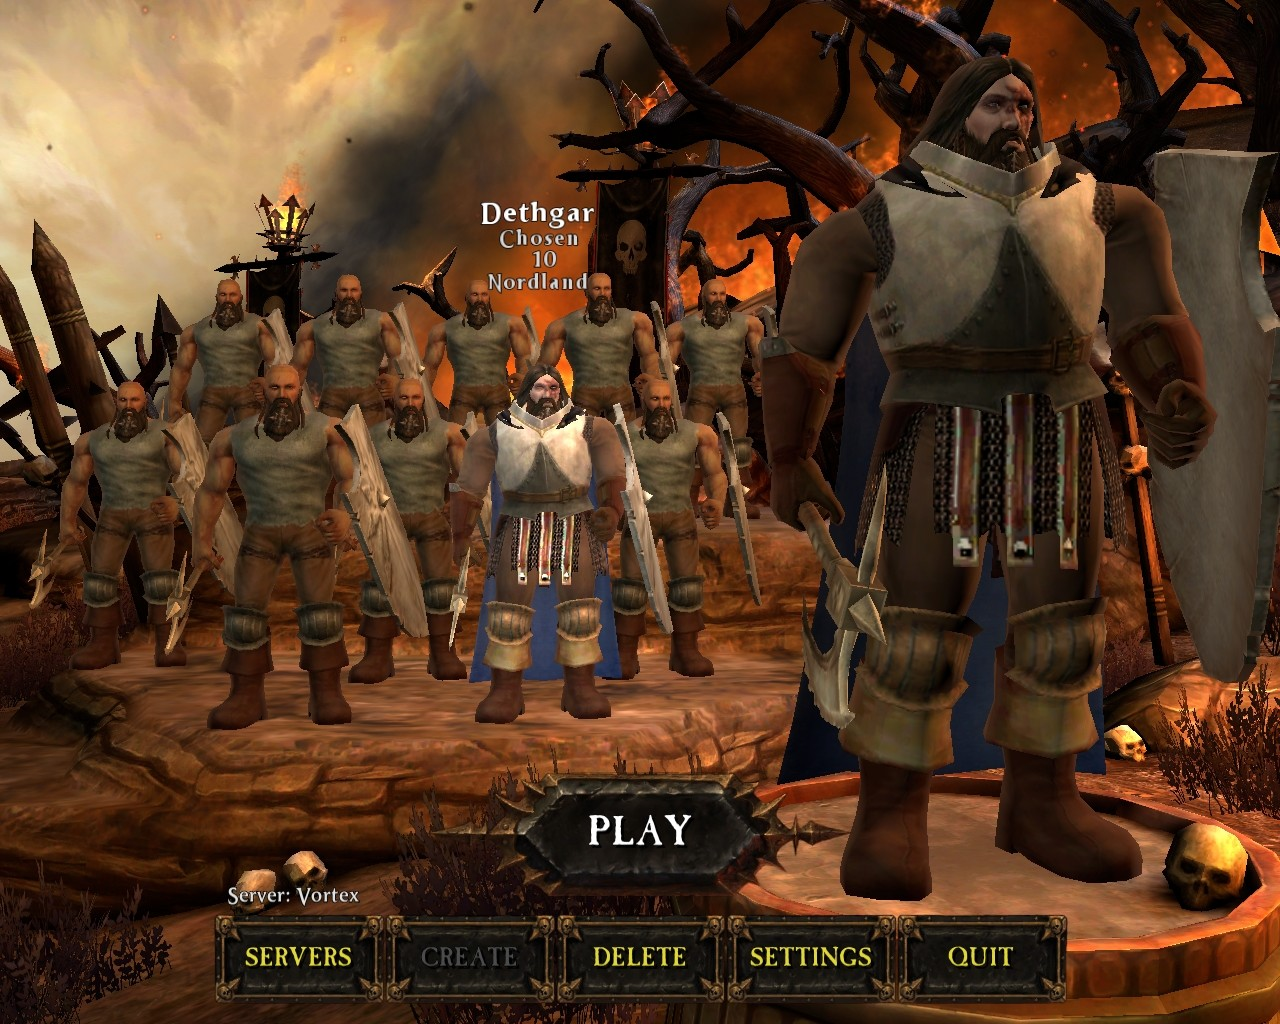 Chaos Chosen Squad Mmorpgcom Warhammer Online Age Of Reckoning